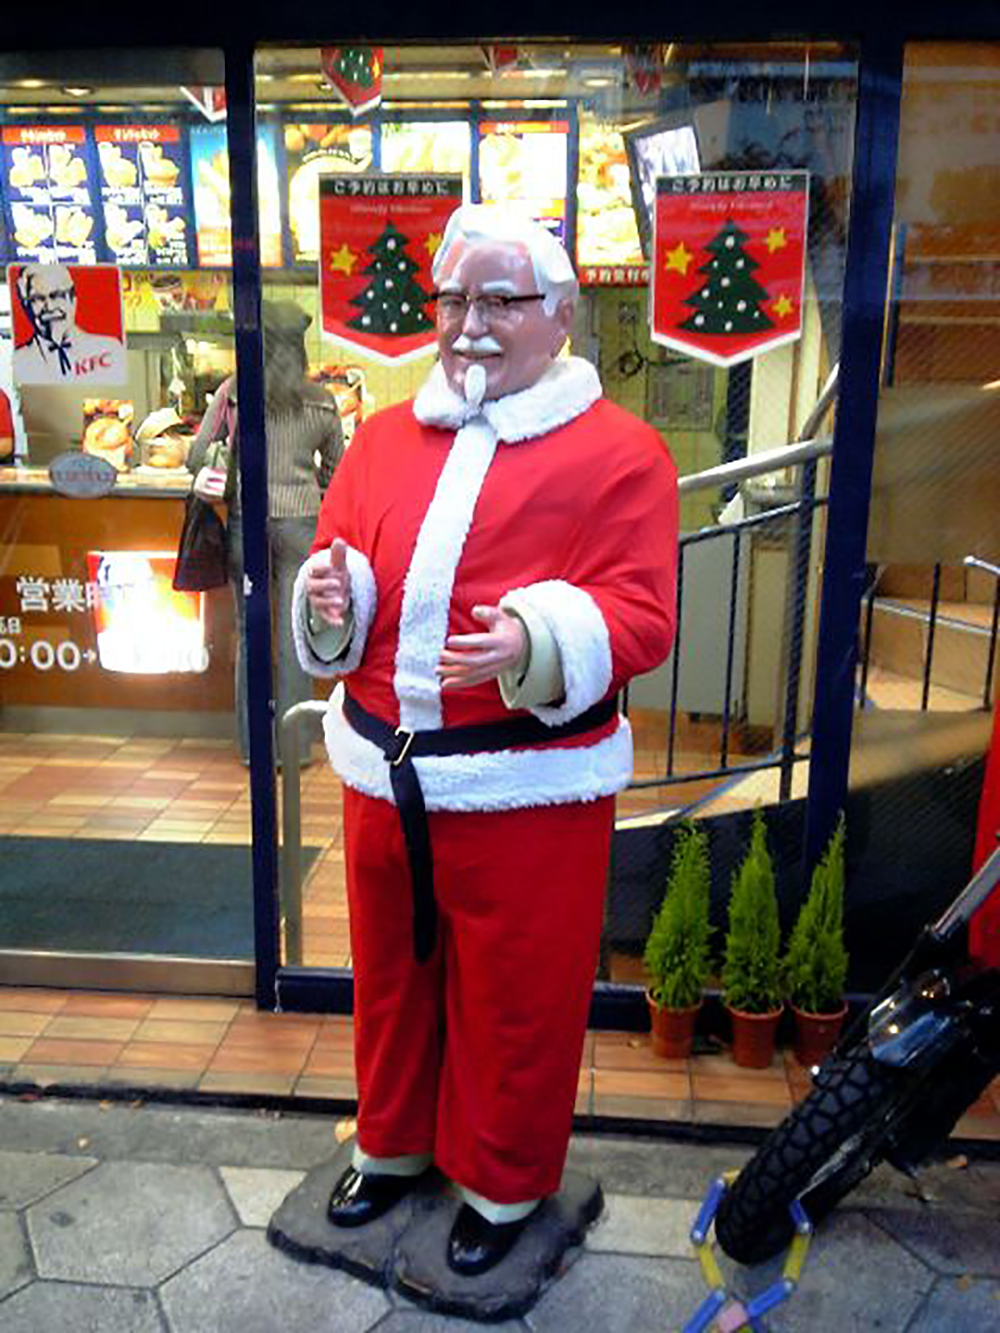 Eating Kentucky Fried Chicken is a Christmas Tradition for Many Japanese